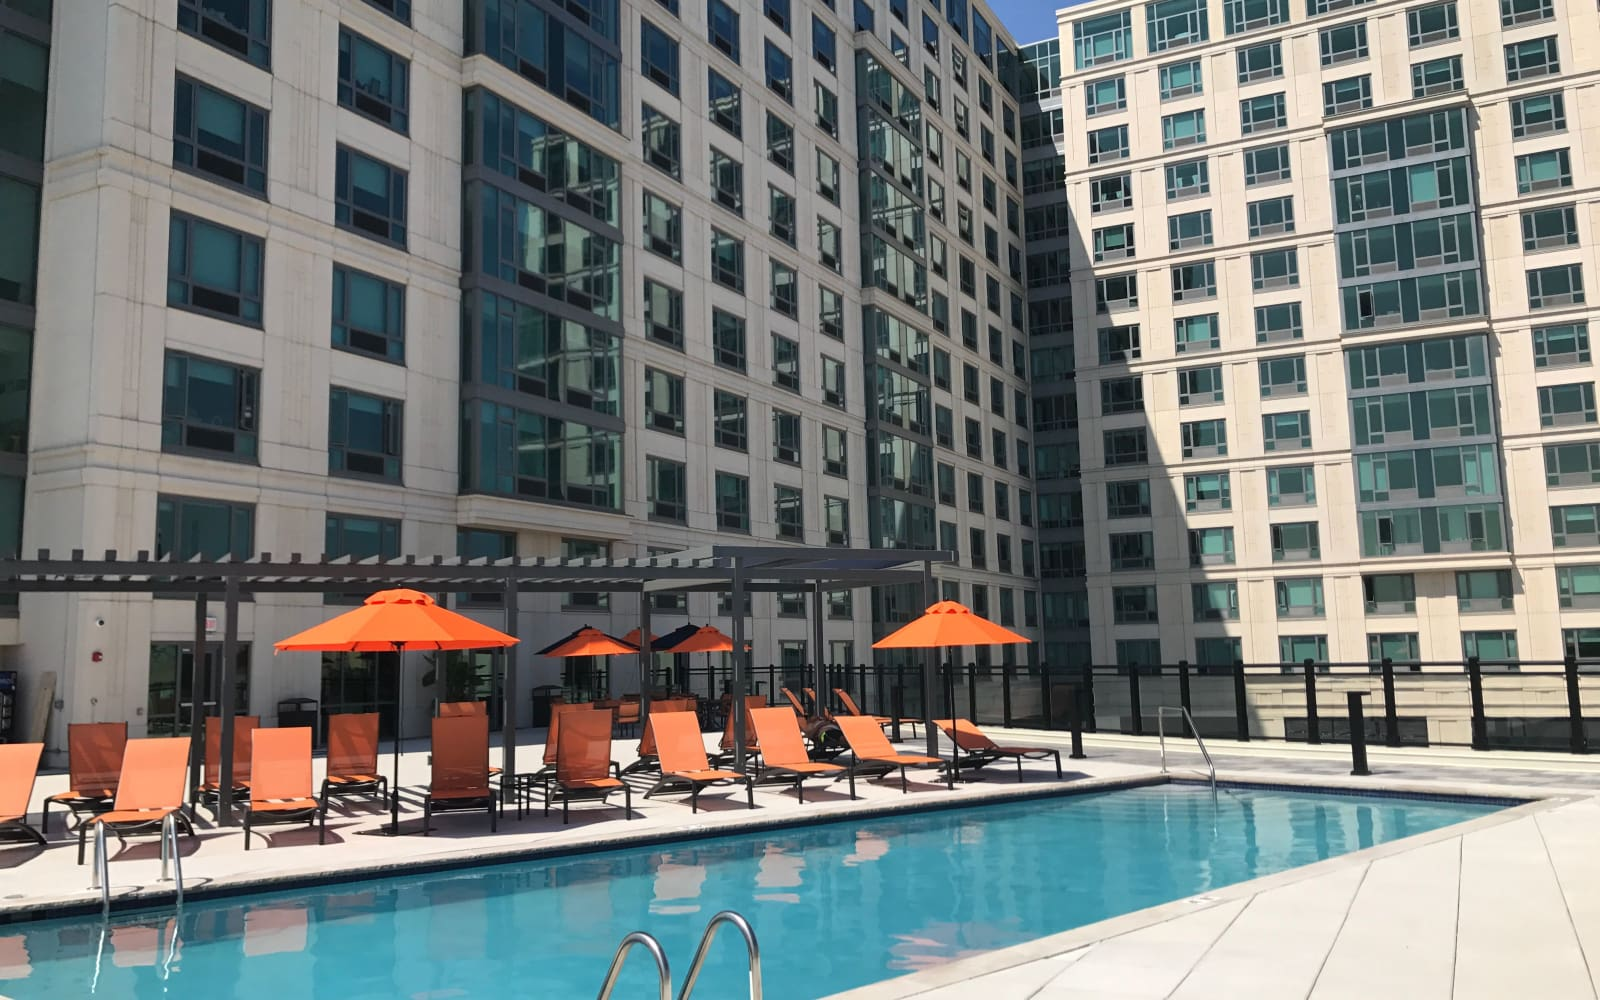 Pool at The Centre in Cliffside Park, NJ